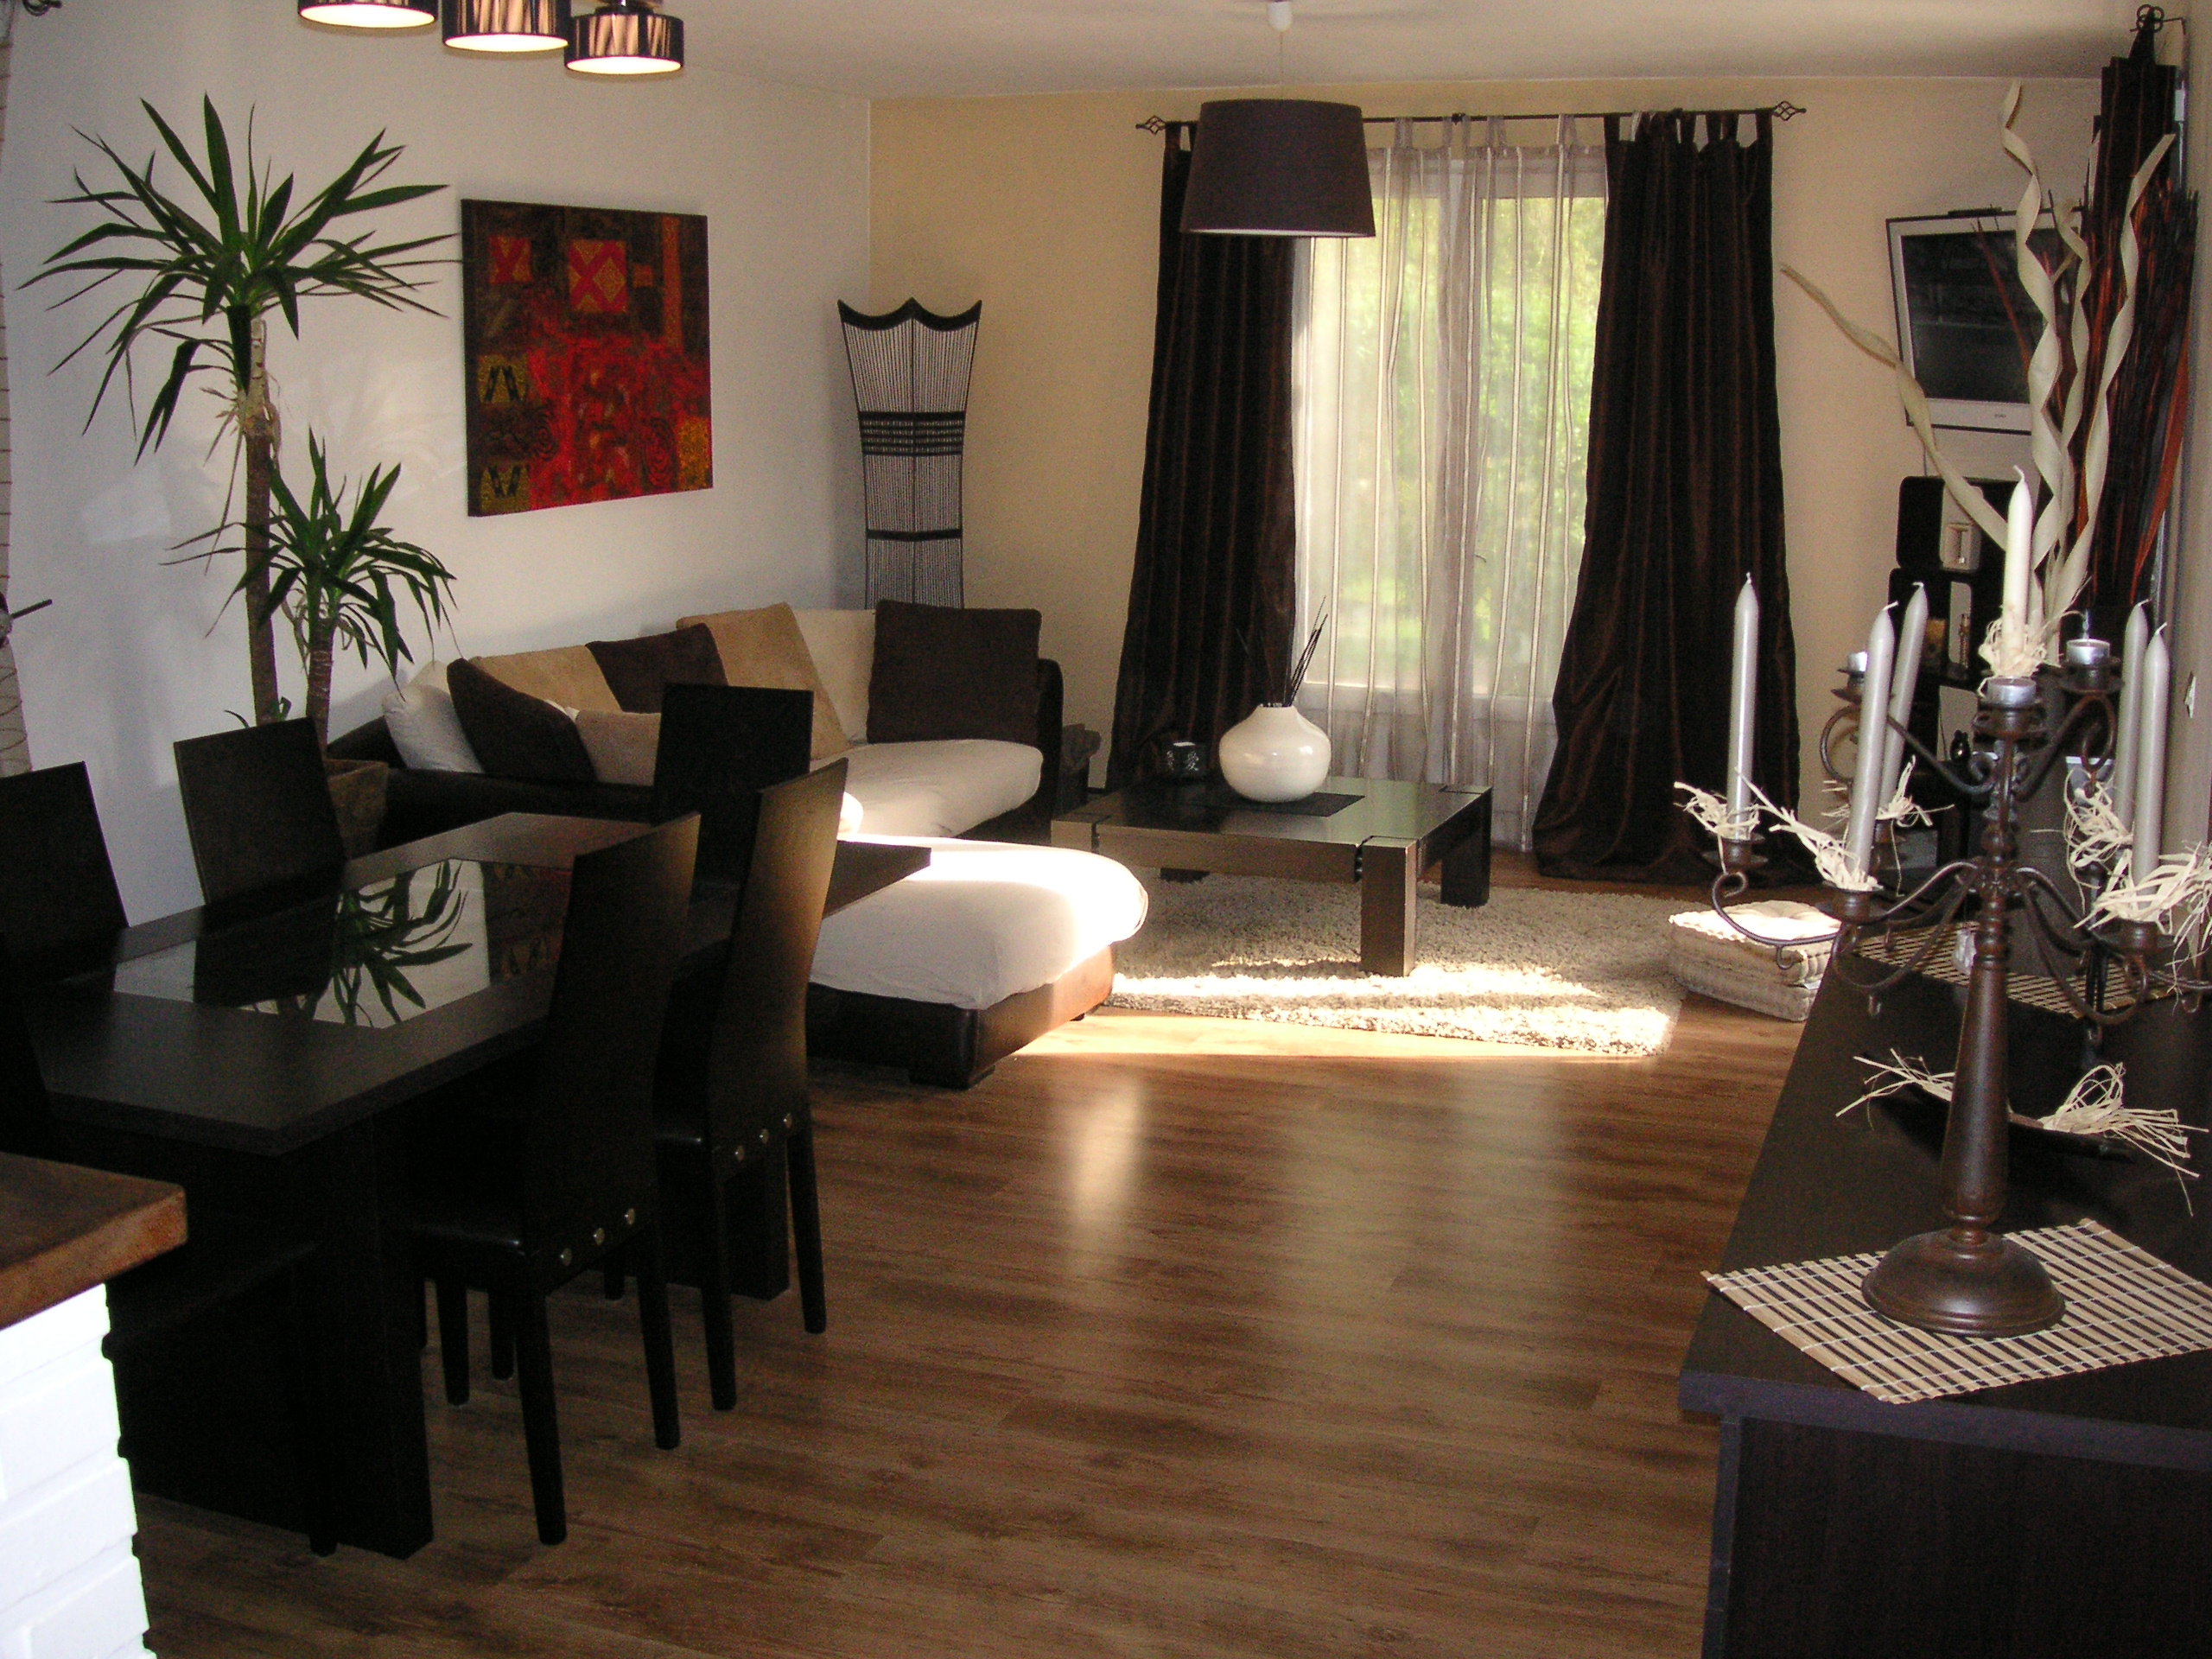 Conseil d co divers r alisations en picardie home staging for Deco salon moderne chic